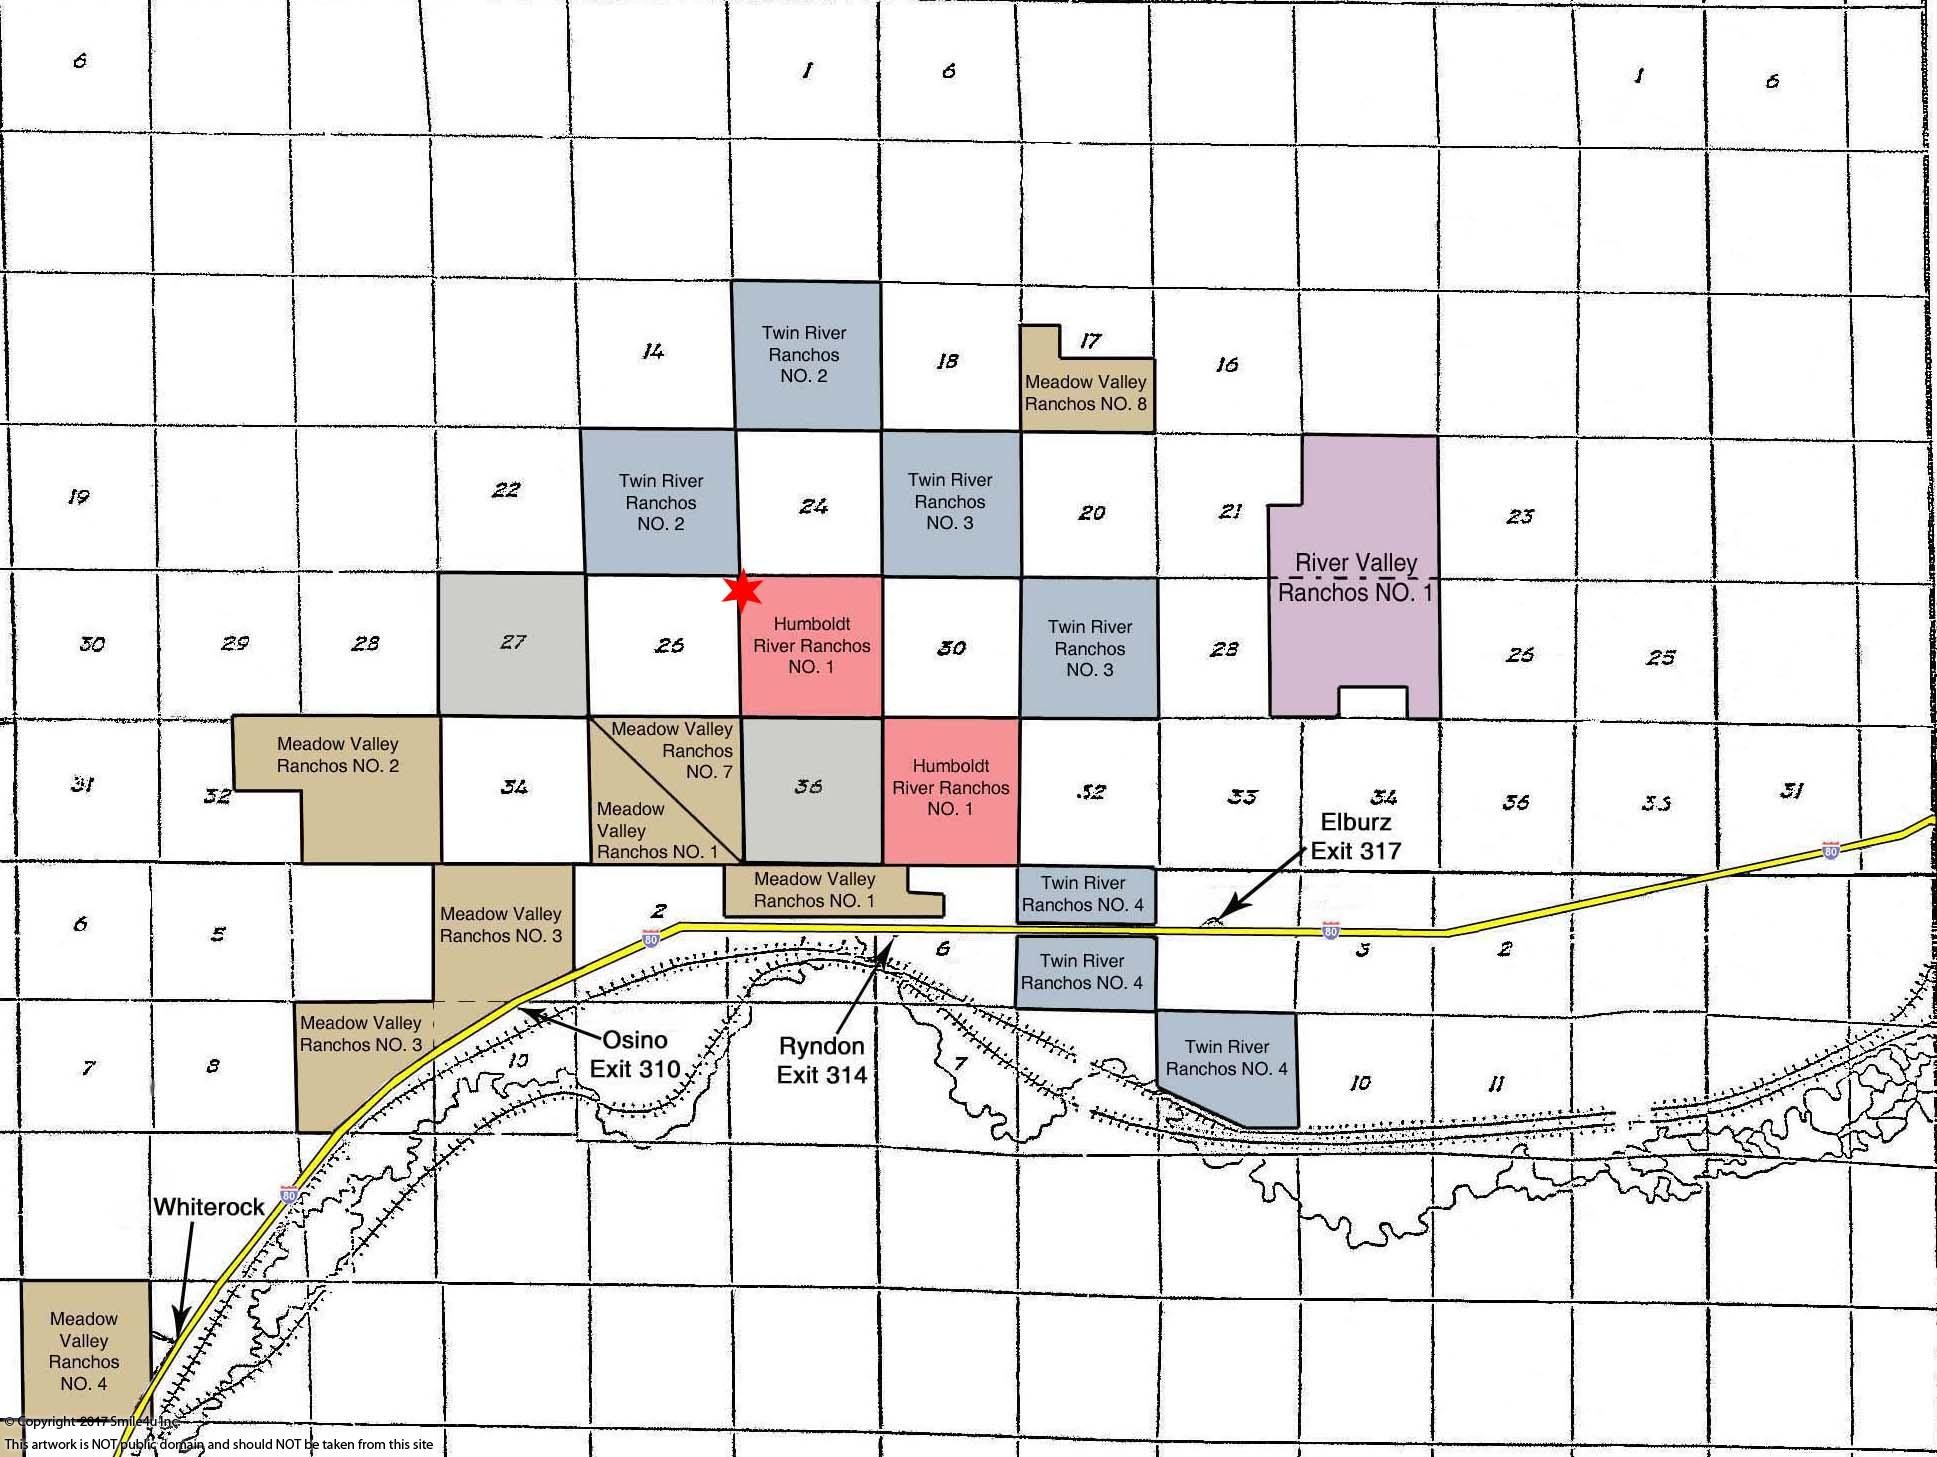 177902_watermarked_Color- Elko - T & R, Section, Subdivision Map 18x24.jpg